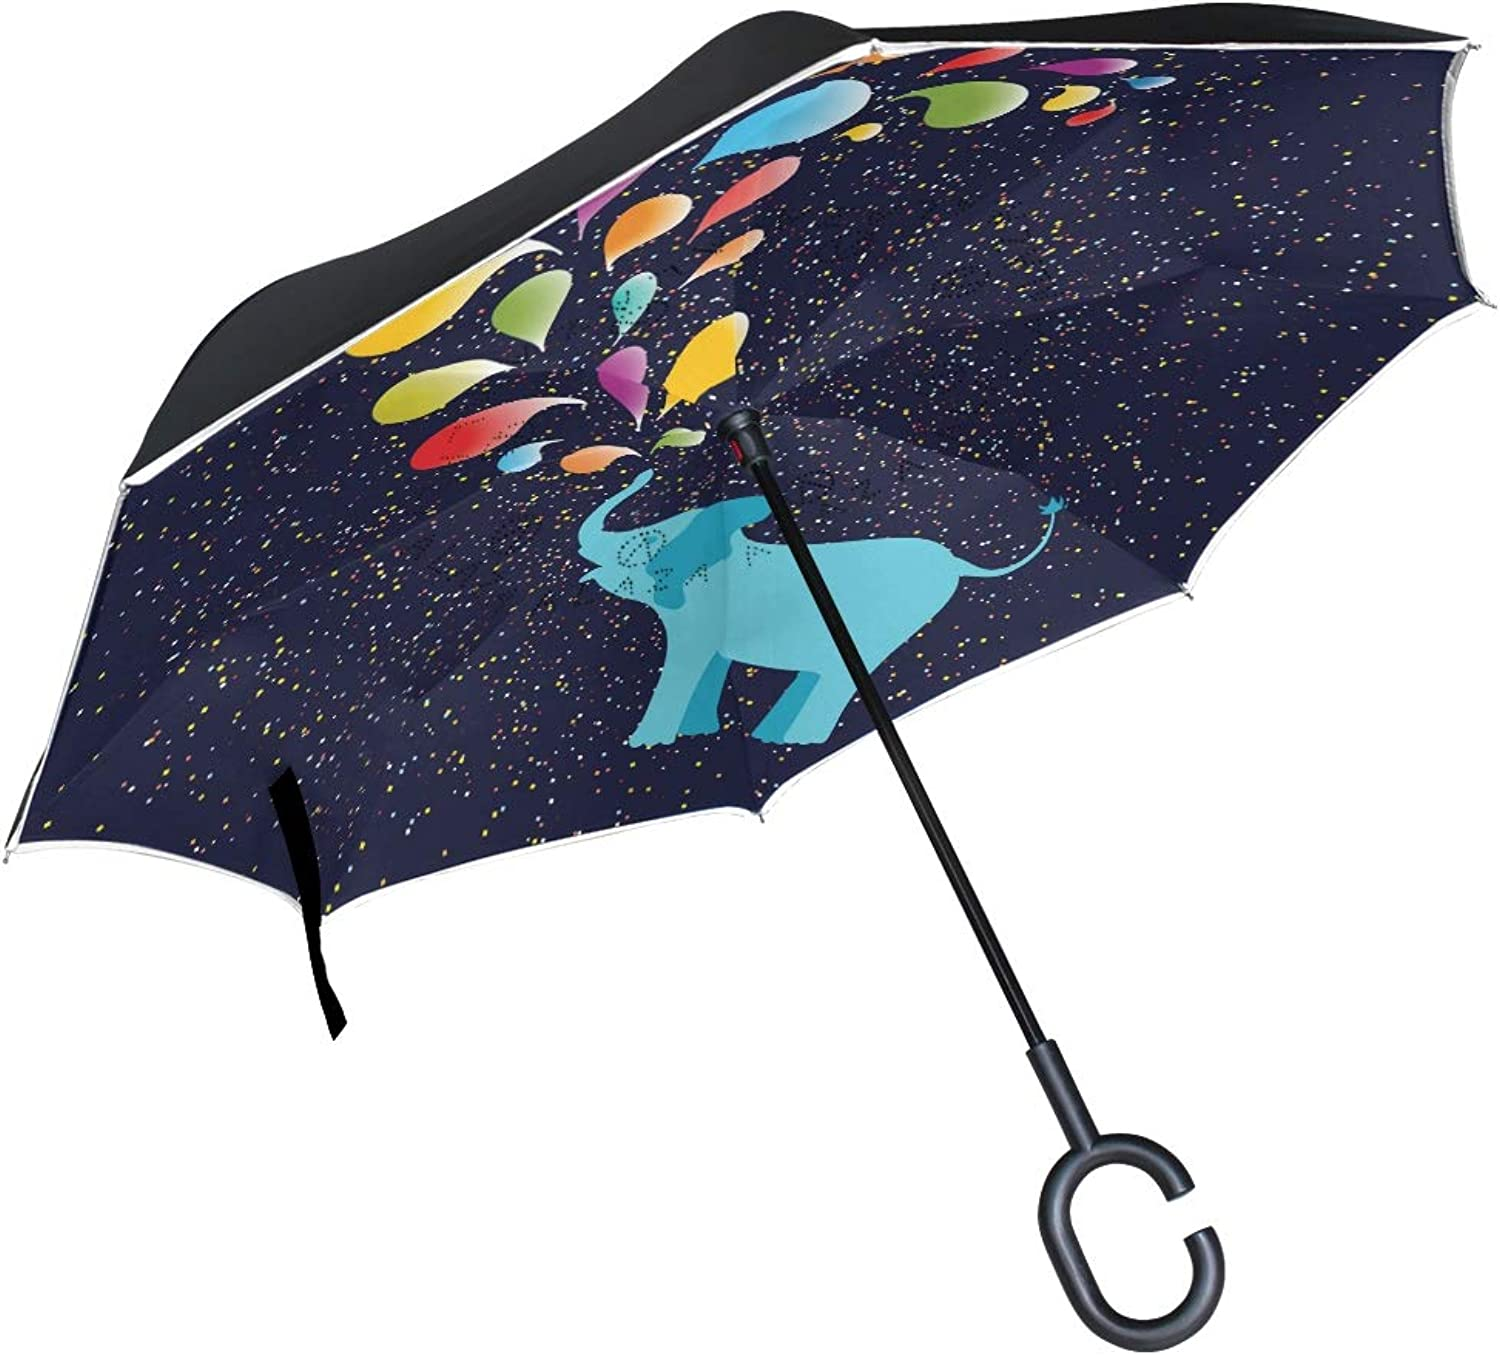 Senya Double Layer Ingreened Umbrellas Llama with Sloth Reverse Folding Umbrella Windproof UV Predection with CShaped Handle for Car Rain Outdoor Travel